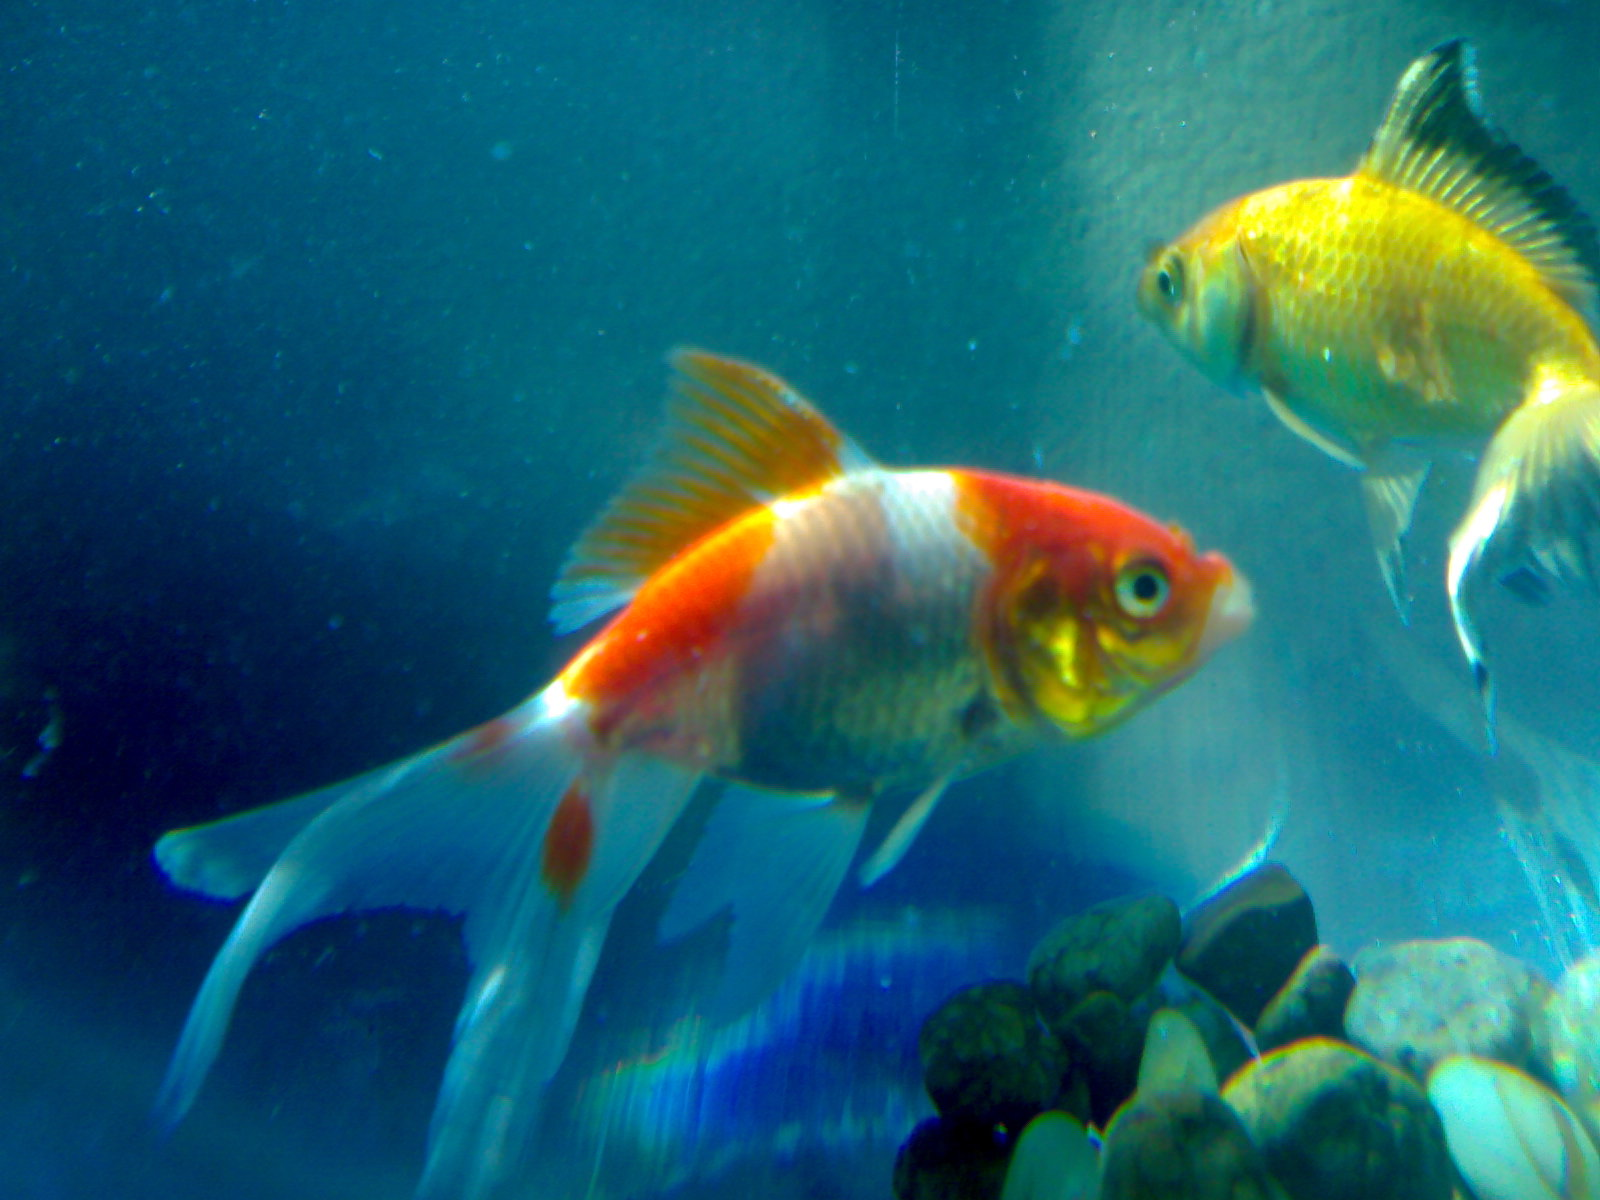 http://4.bp.blogspot.com/-cHj-hIOV0JM/Tq5nflnbPtI/AAAAAAAADLc/QlZgLTUb7sU/s1600/beautiful_colourful_fish-_desktop_wallpaper.jpg